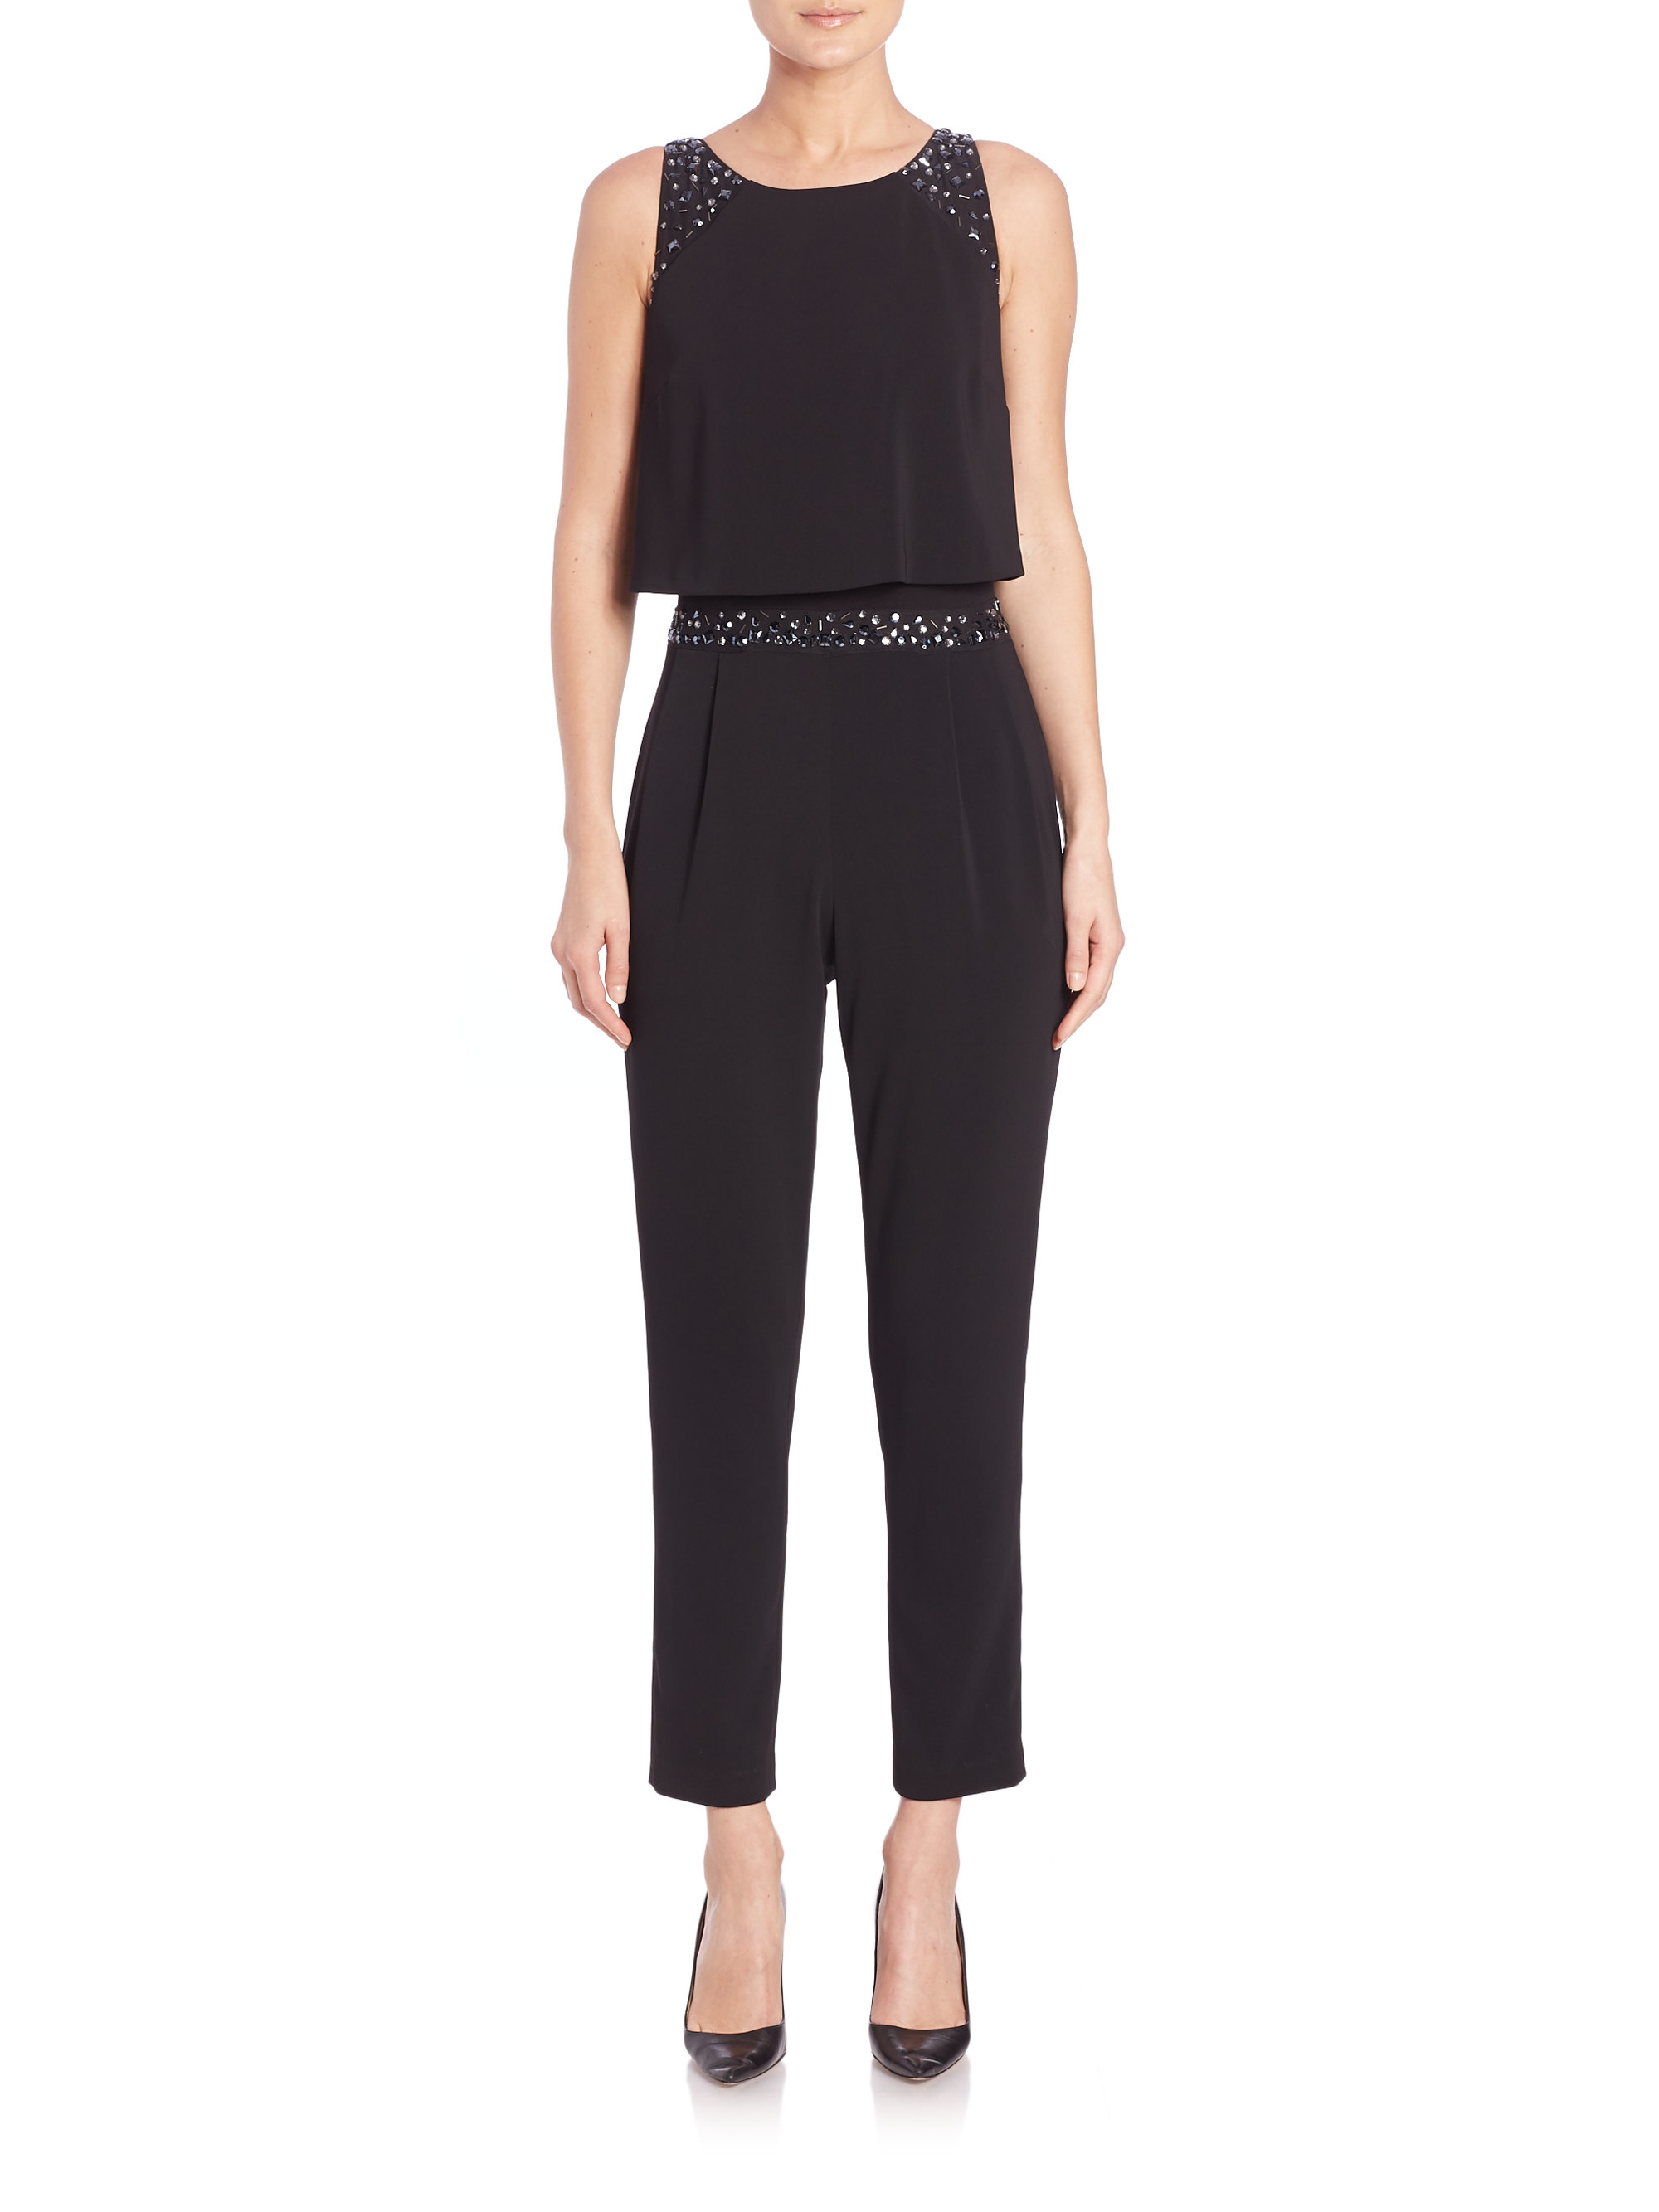 358c365929c Lyst - Laundry by Shelli Segal Embellished Popover Crepe Jumpsuit in ...